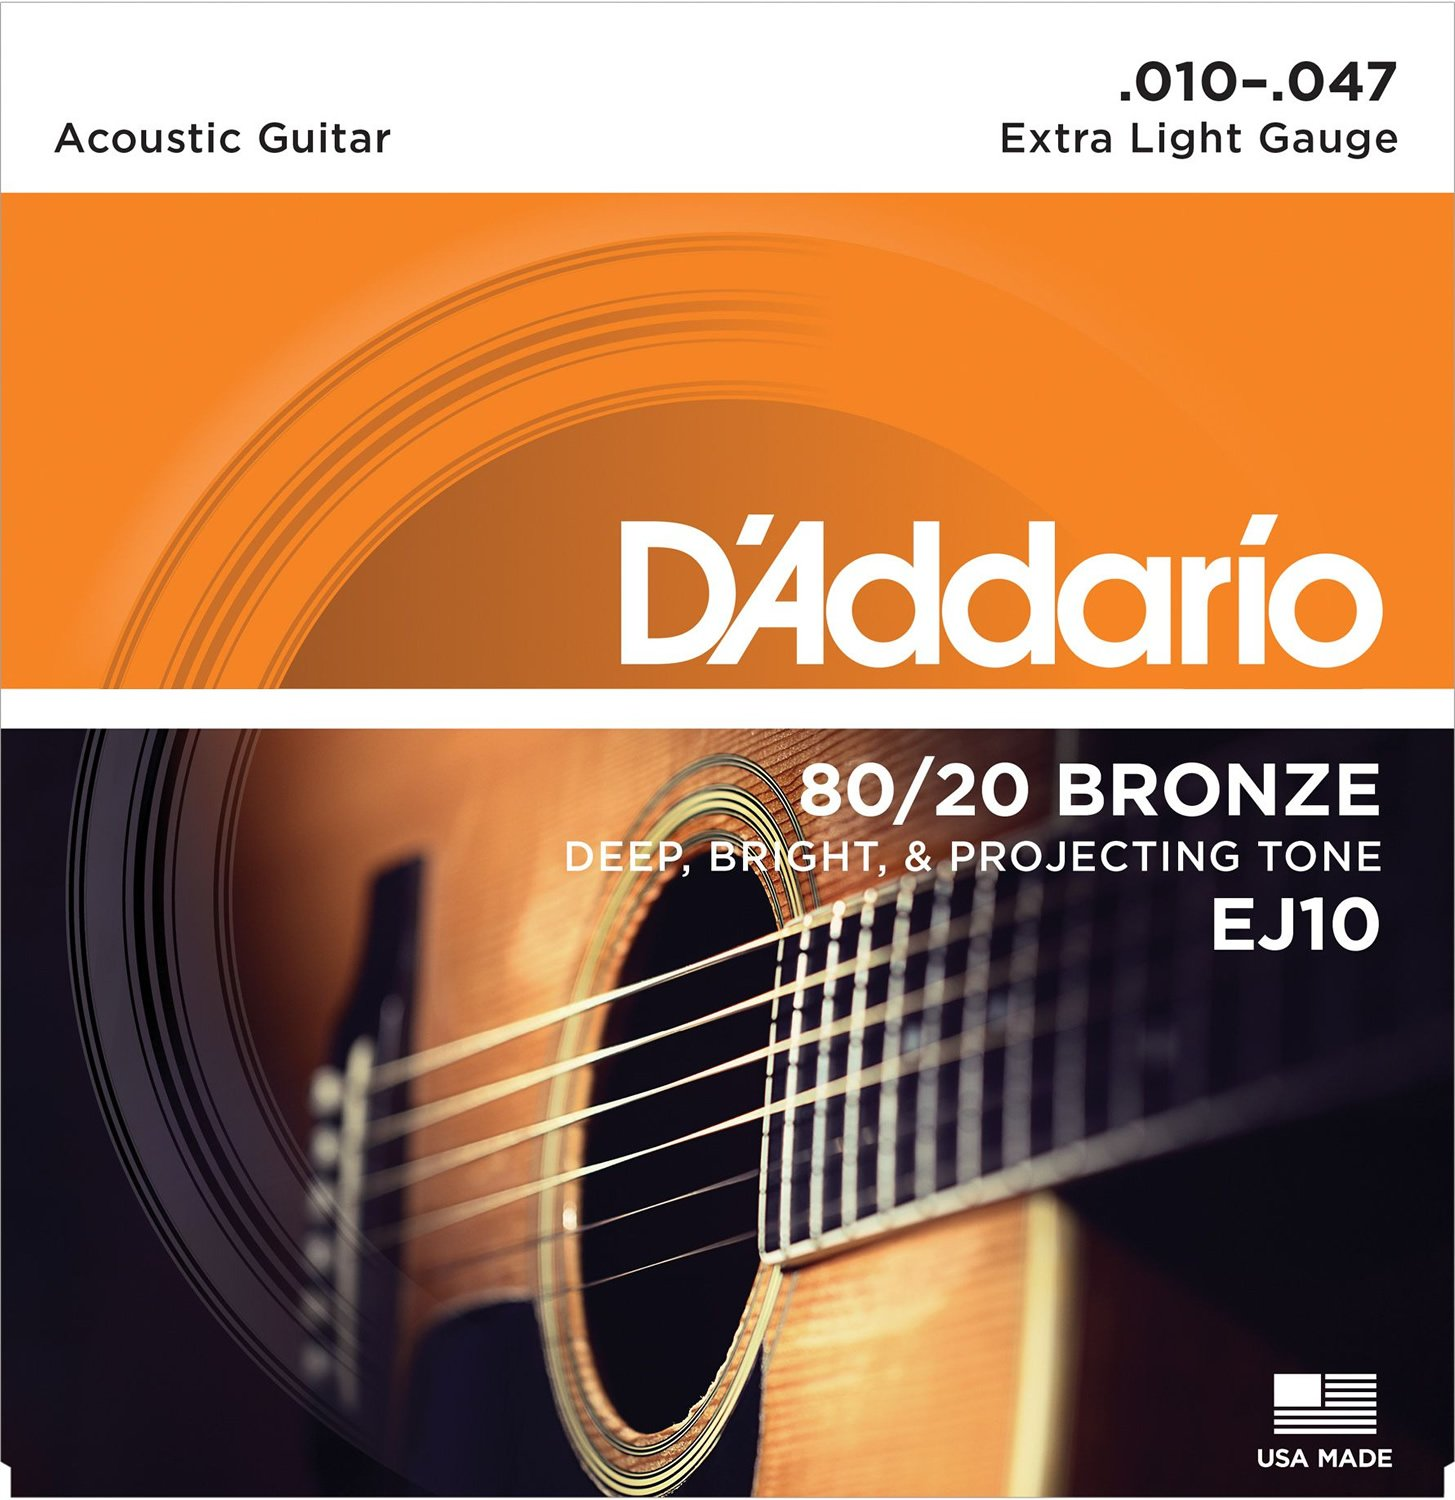 D'Addario EJ10 Bronze Acoustic Guitar Strings, Extra Light, 10-47 D' Addario